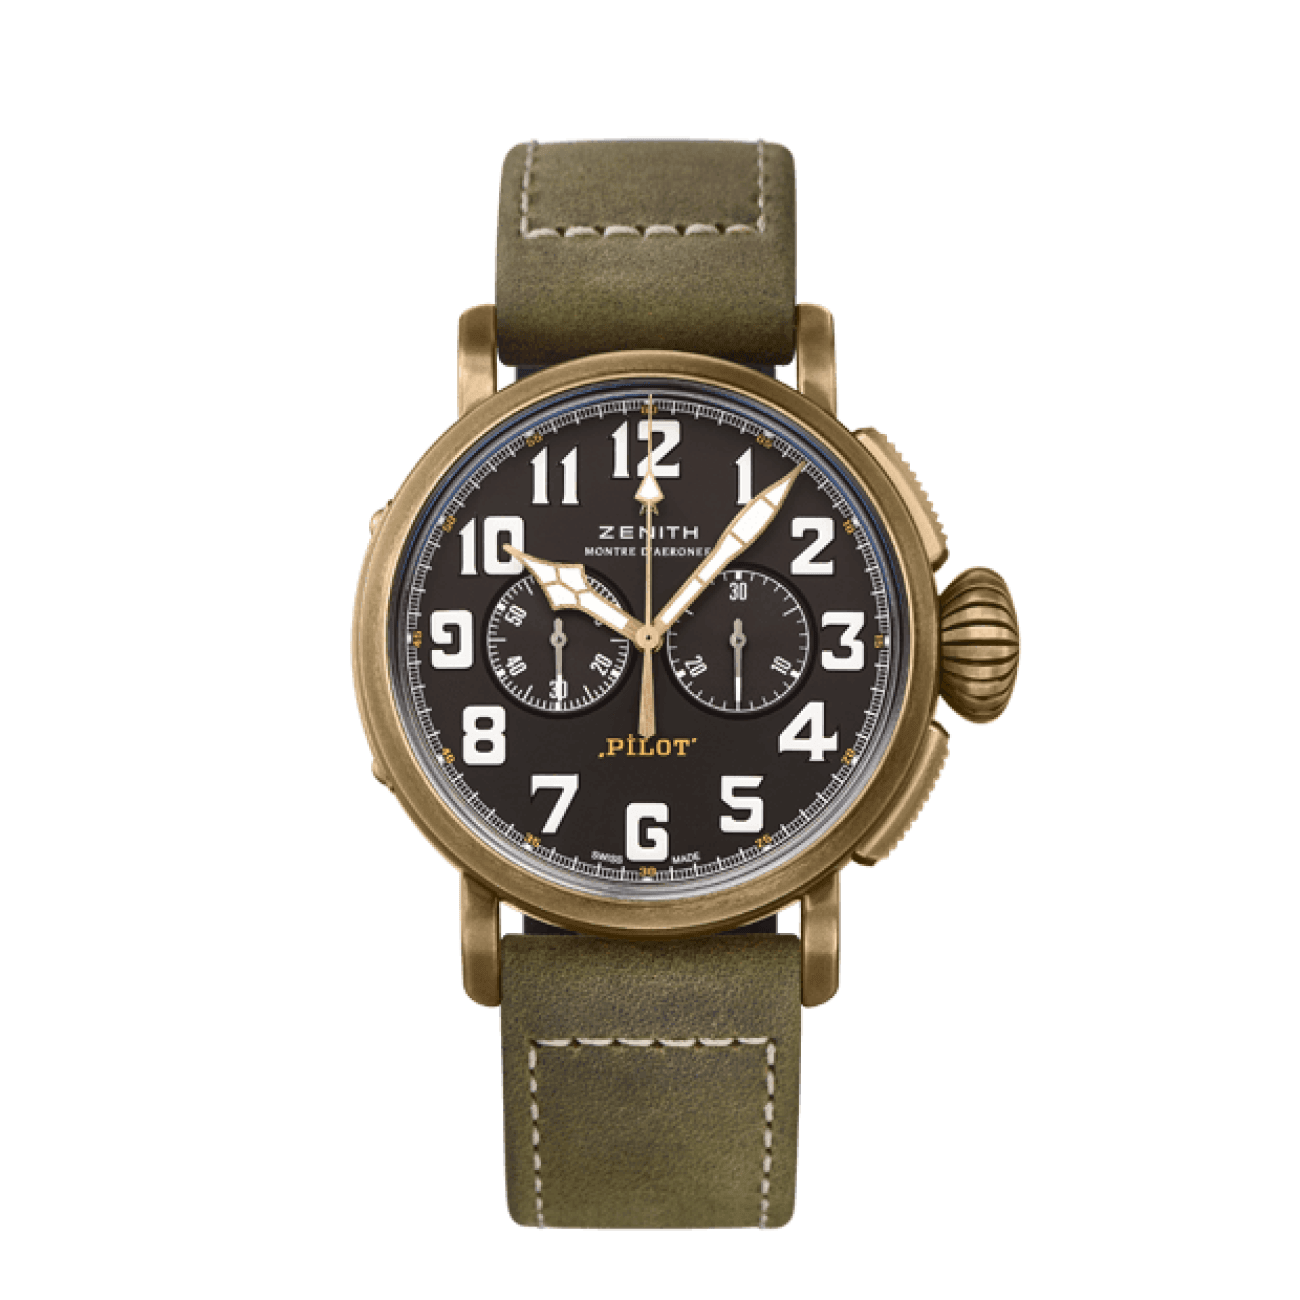 Zenith Watches - Pilot Type 20 Chronograph Extra Special | Manfredi Jewels